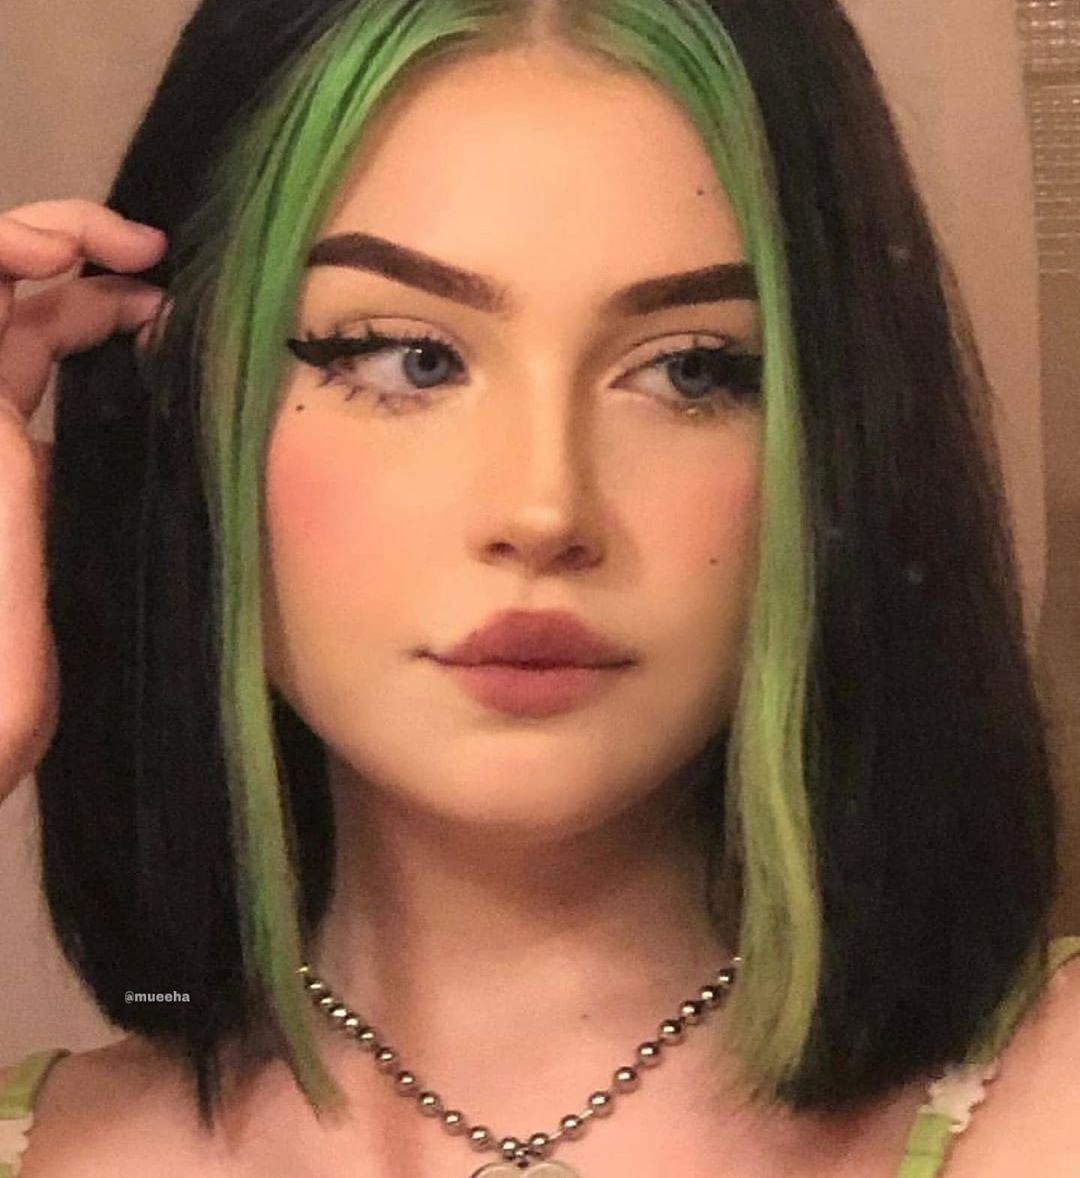 Muha On Instagram Which One 1 2 3 4 Or 5 Follow Mueeha For More In 2020 Hair Inspo Color Hair Color Streaks Aesthetic Hair